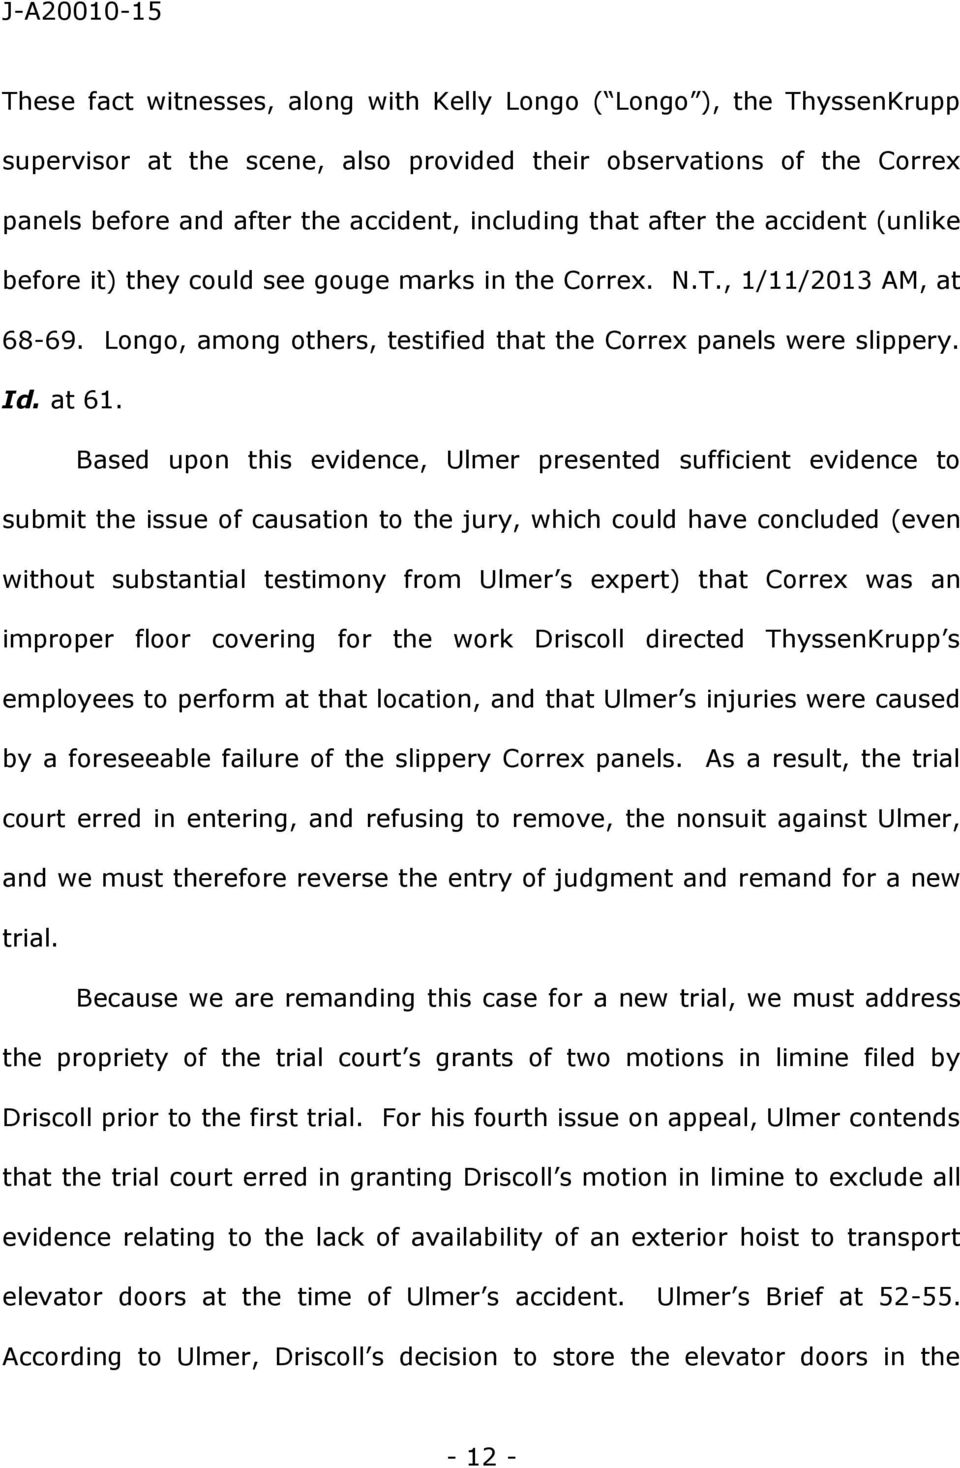 Based upon this evidence, Ulmer presented sufficient evidence to submit the issue of causation to the jury, which could have concluded (even without substantial testimony from Ulmer s expert) that